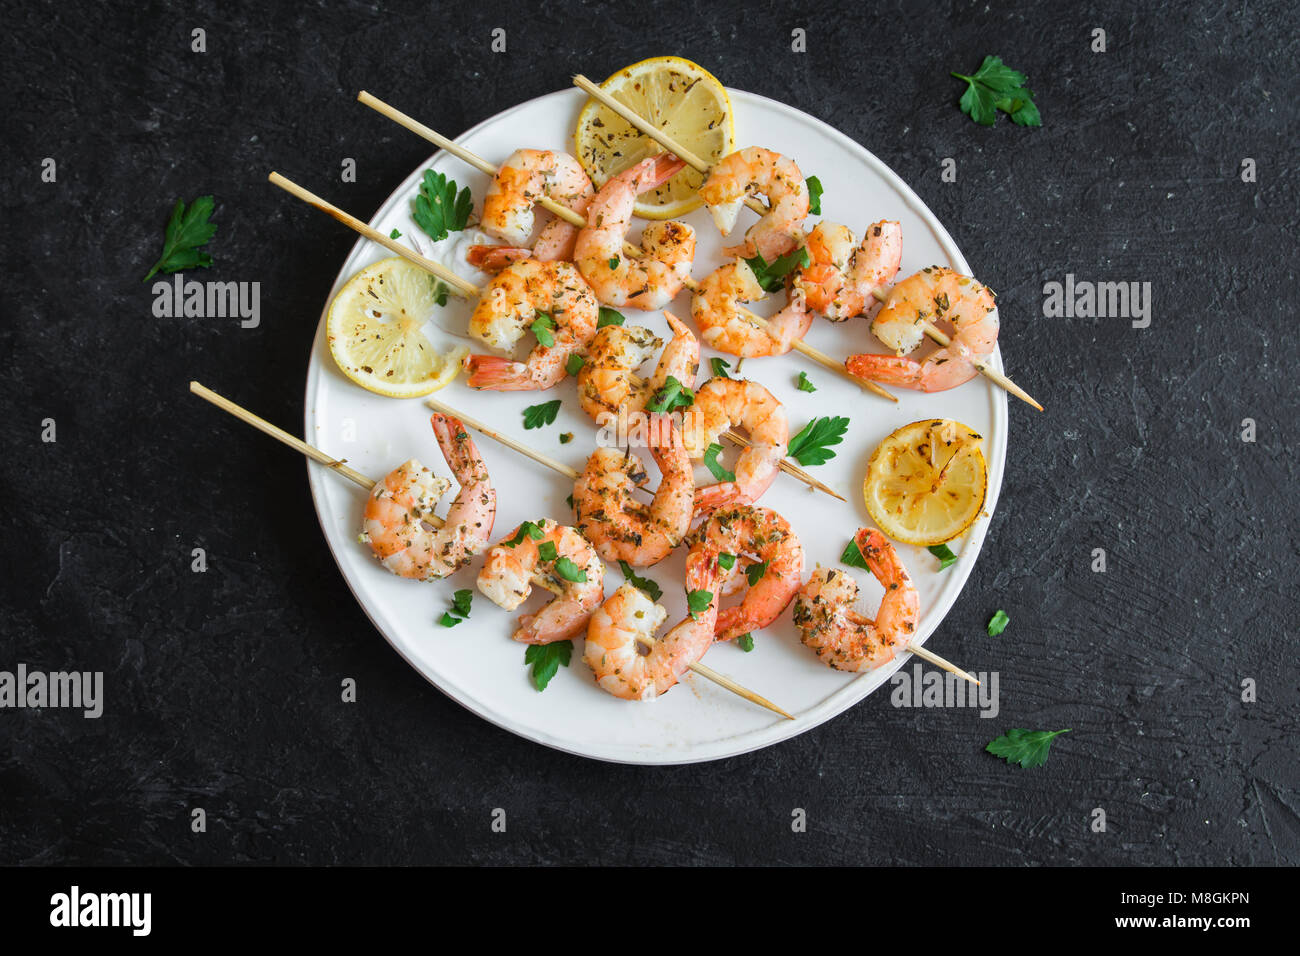 Grilled shrimp skewers. Seafood, shelfish. Shrimps Prawns skewers with spices and fresh herbs on stone black background, - Stock Image